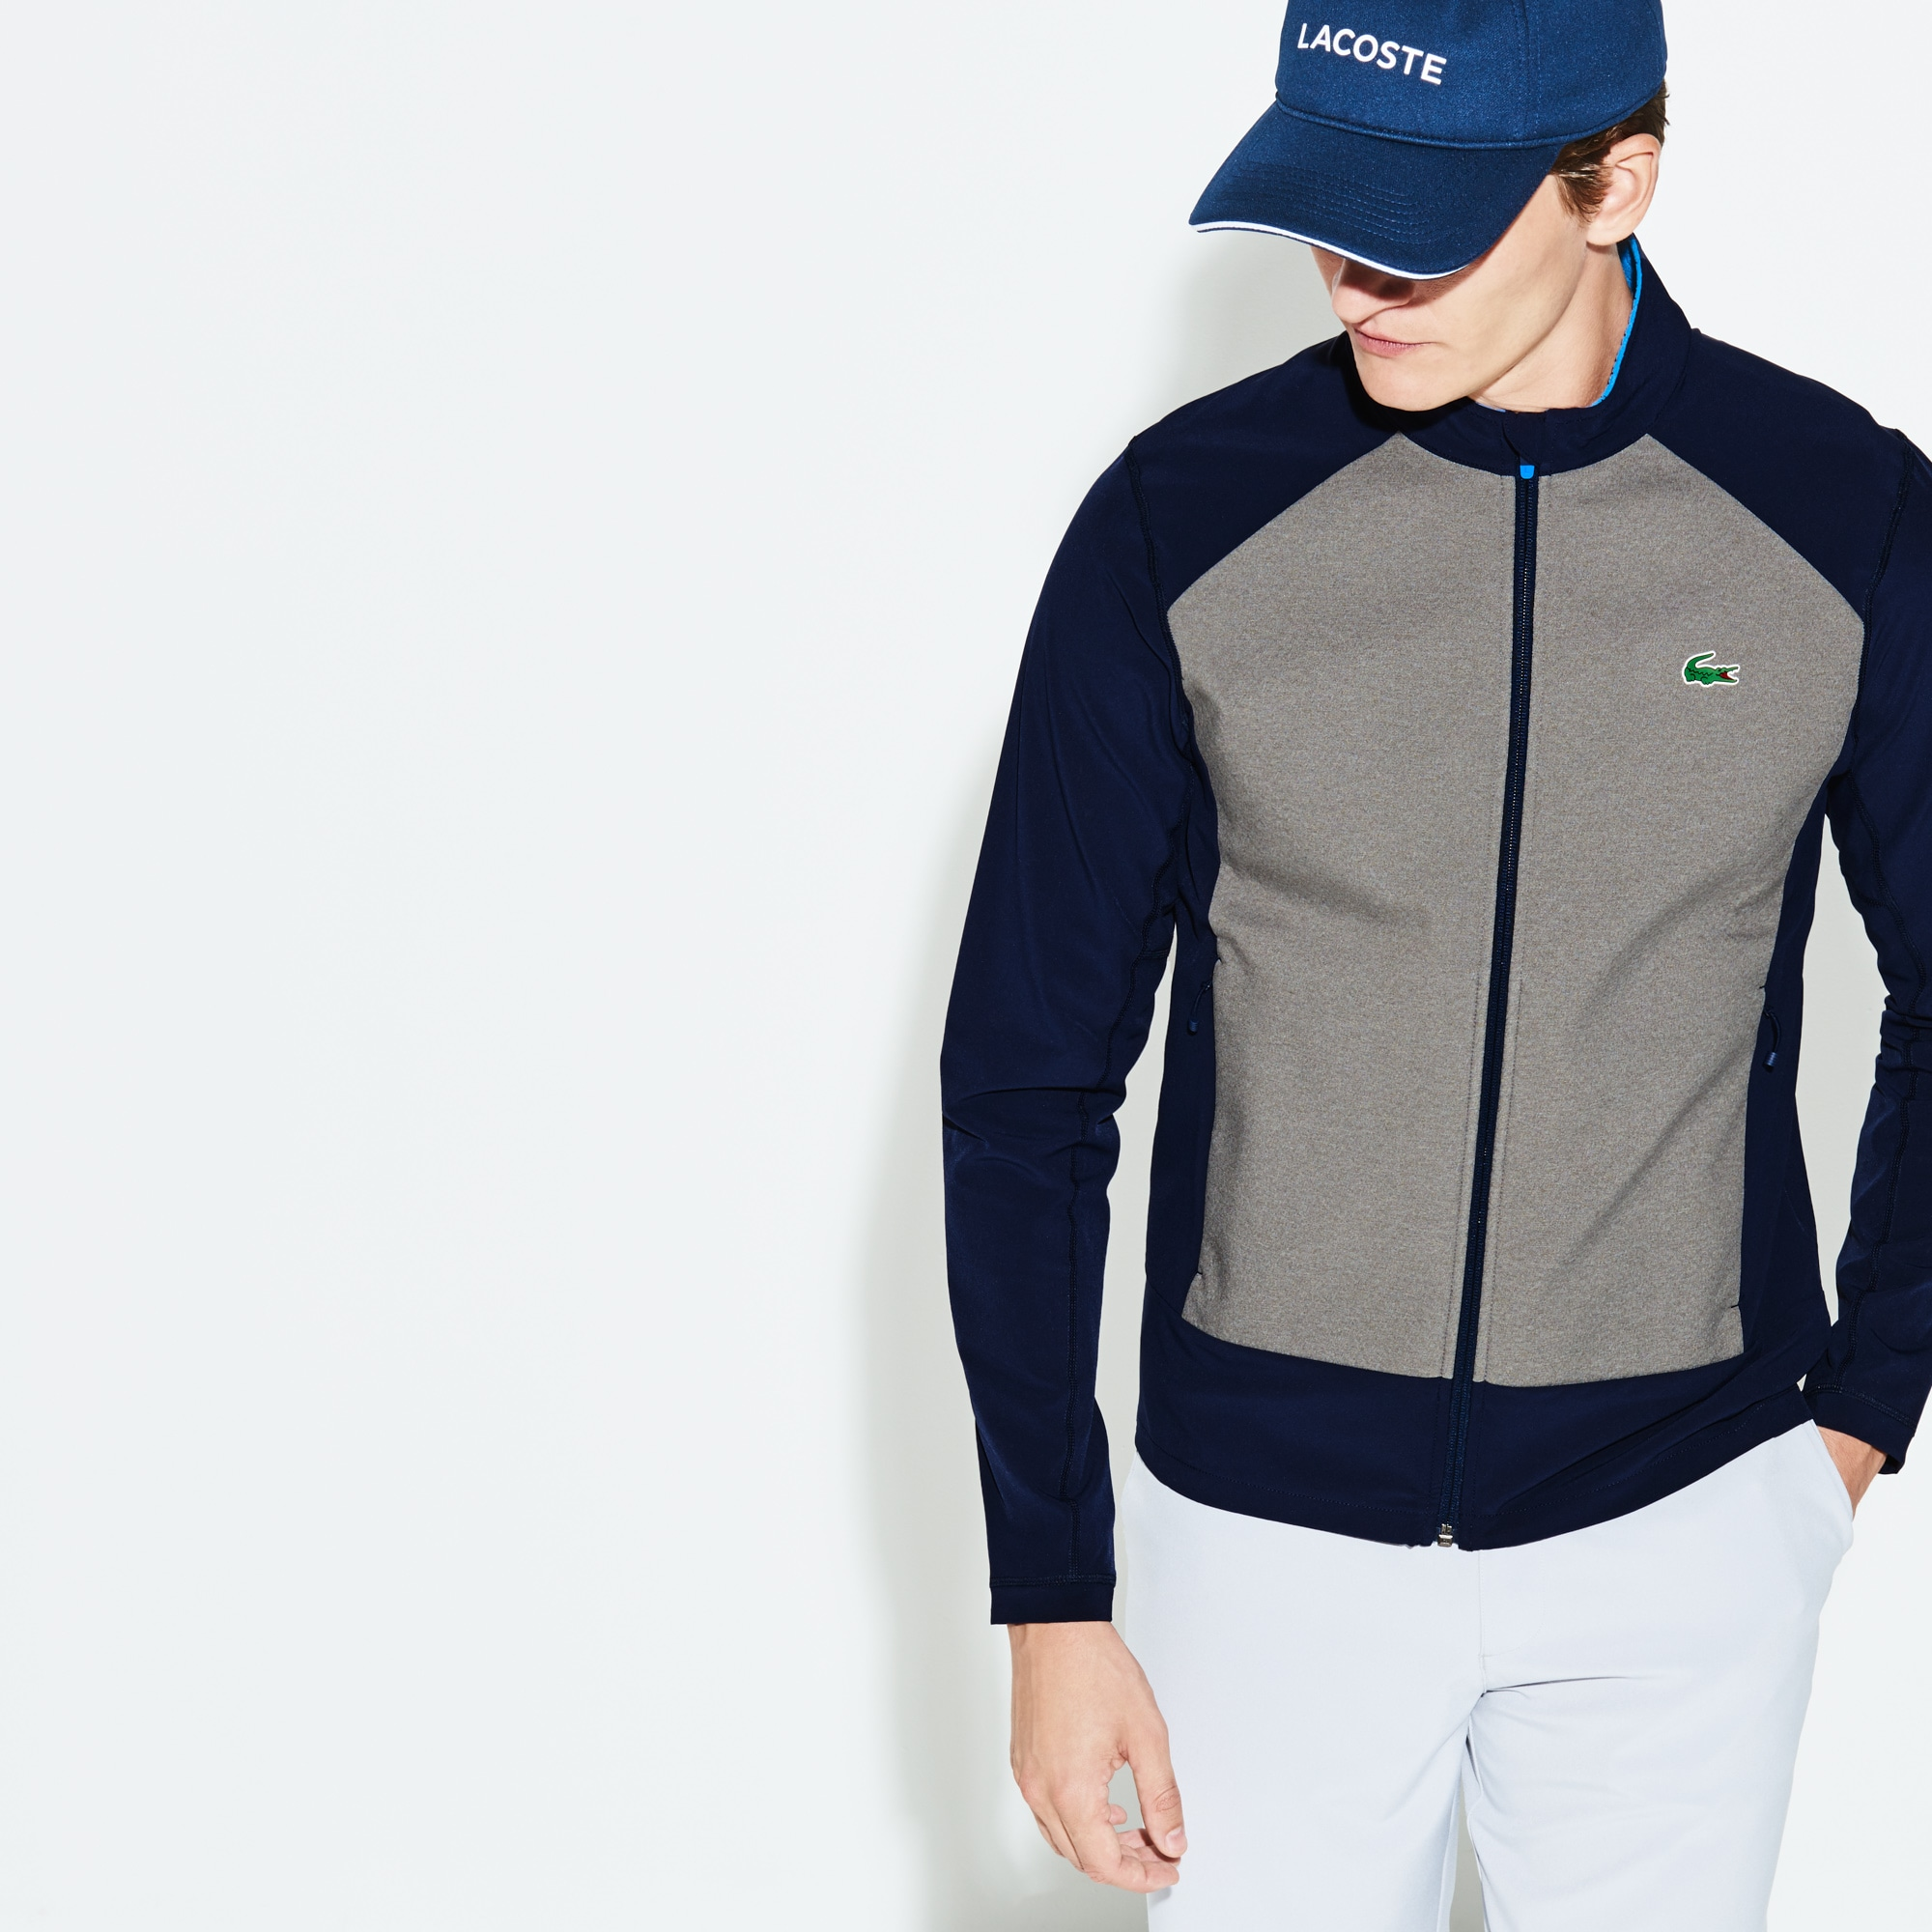 Men's SPORT Water-Resistant Golf Sweatshirt